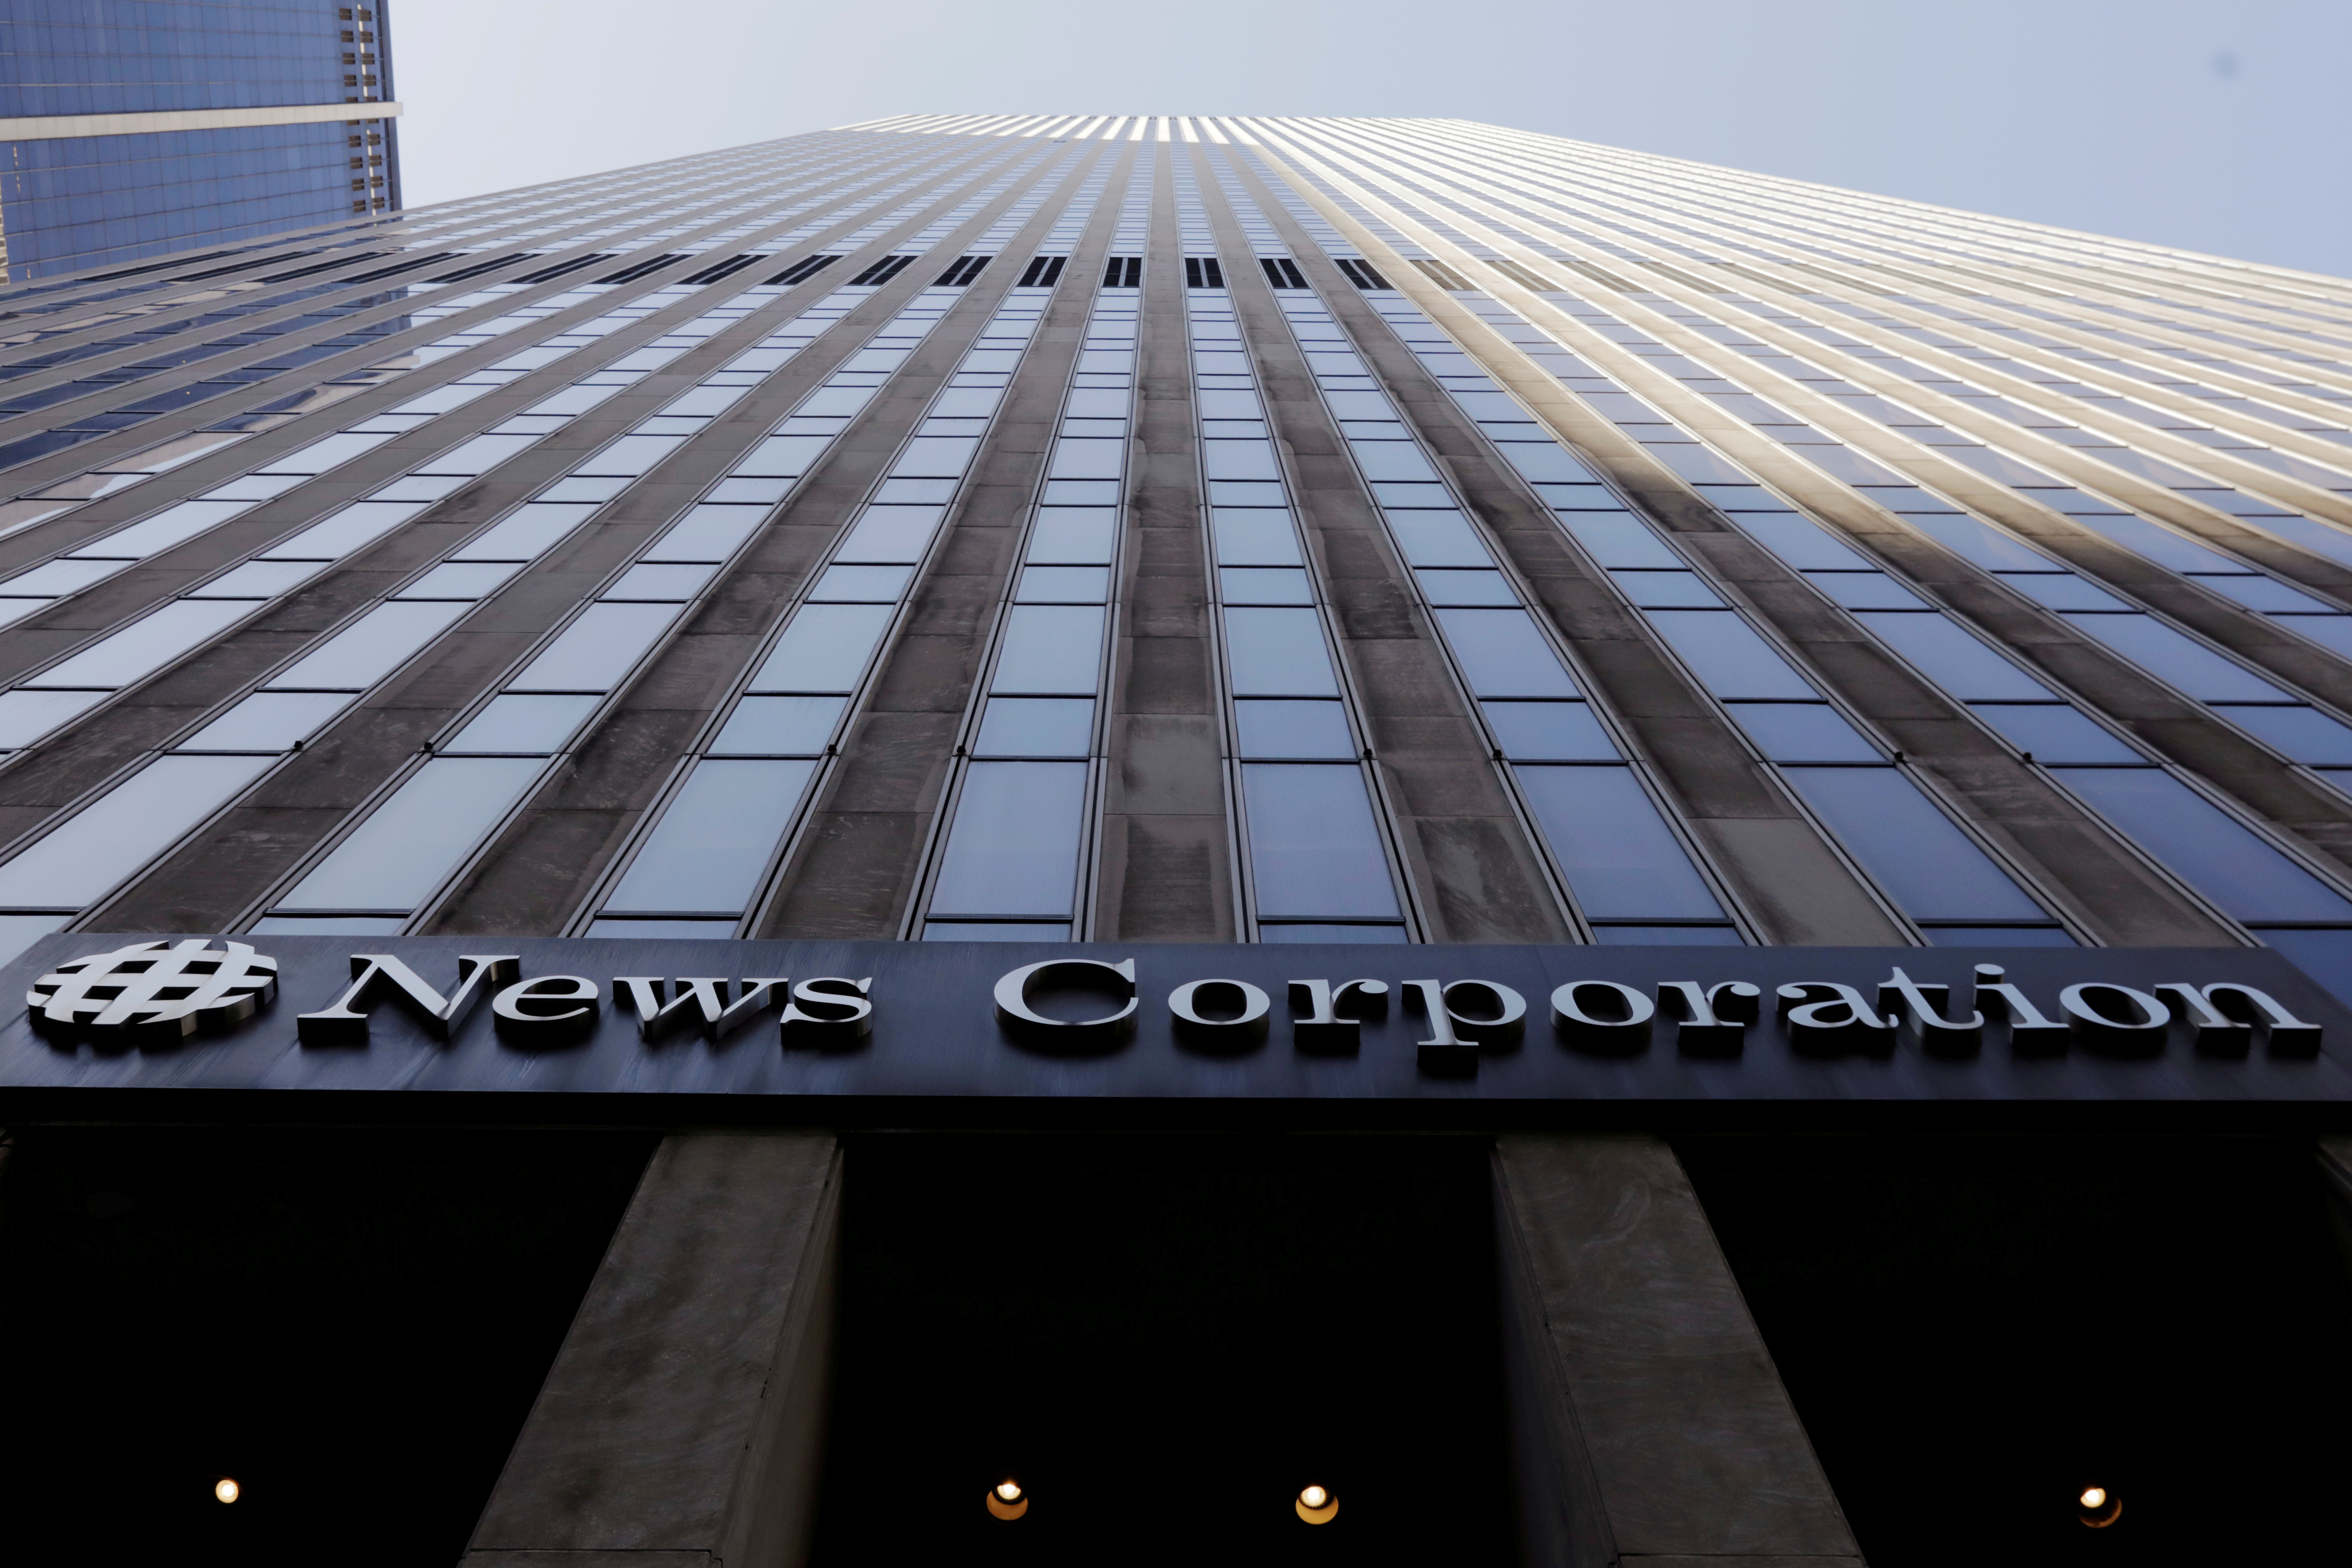 The News Corporation logo is displayed on the side of a building in midtown Manhattan in New York, U.S., February 27, 2018.  REUTERS/Lucas Jackson/File Photo